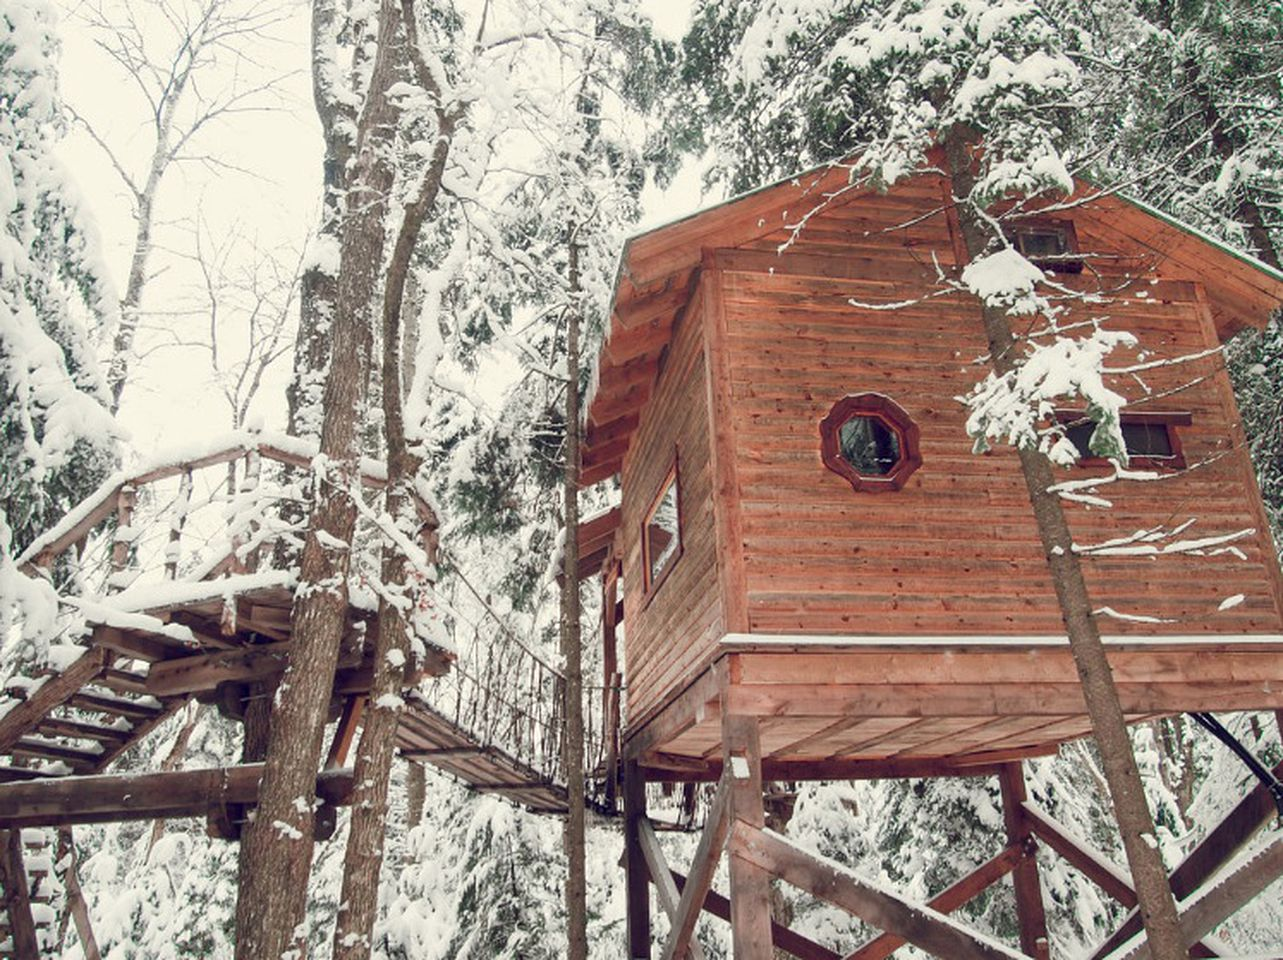 Tree Houses (Nominingue, Quebec, Canada)